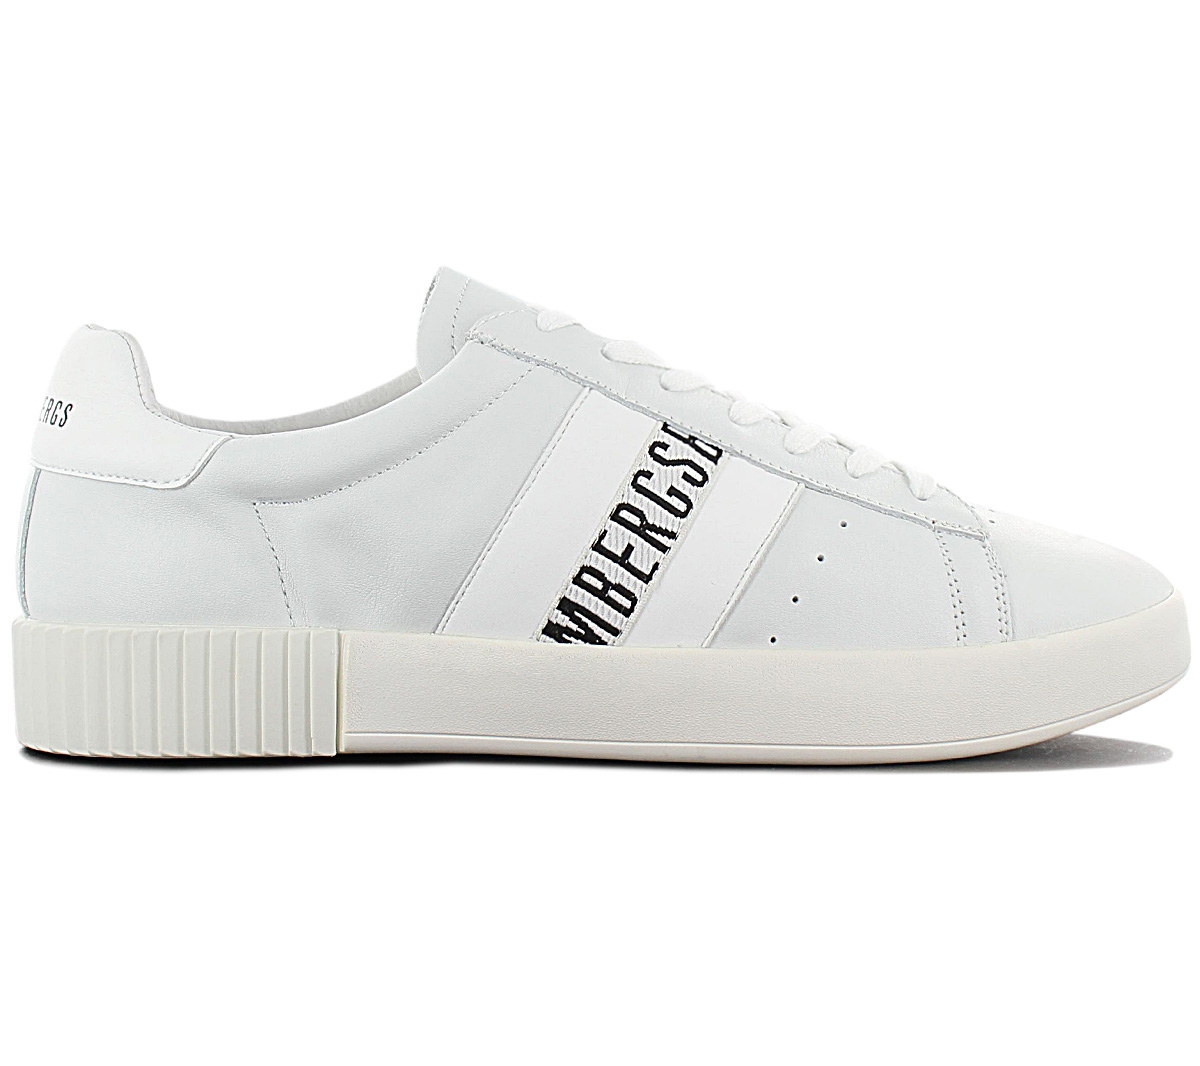 Details about Bikkembergs Cosmos 2334 Men's Sneaker BKE109349 White Shoes Casual Trainers